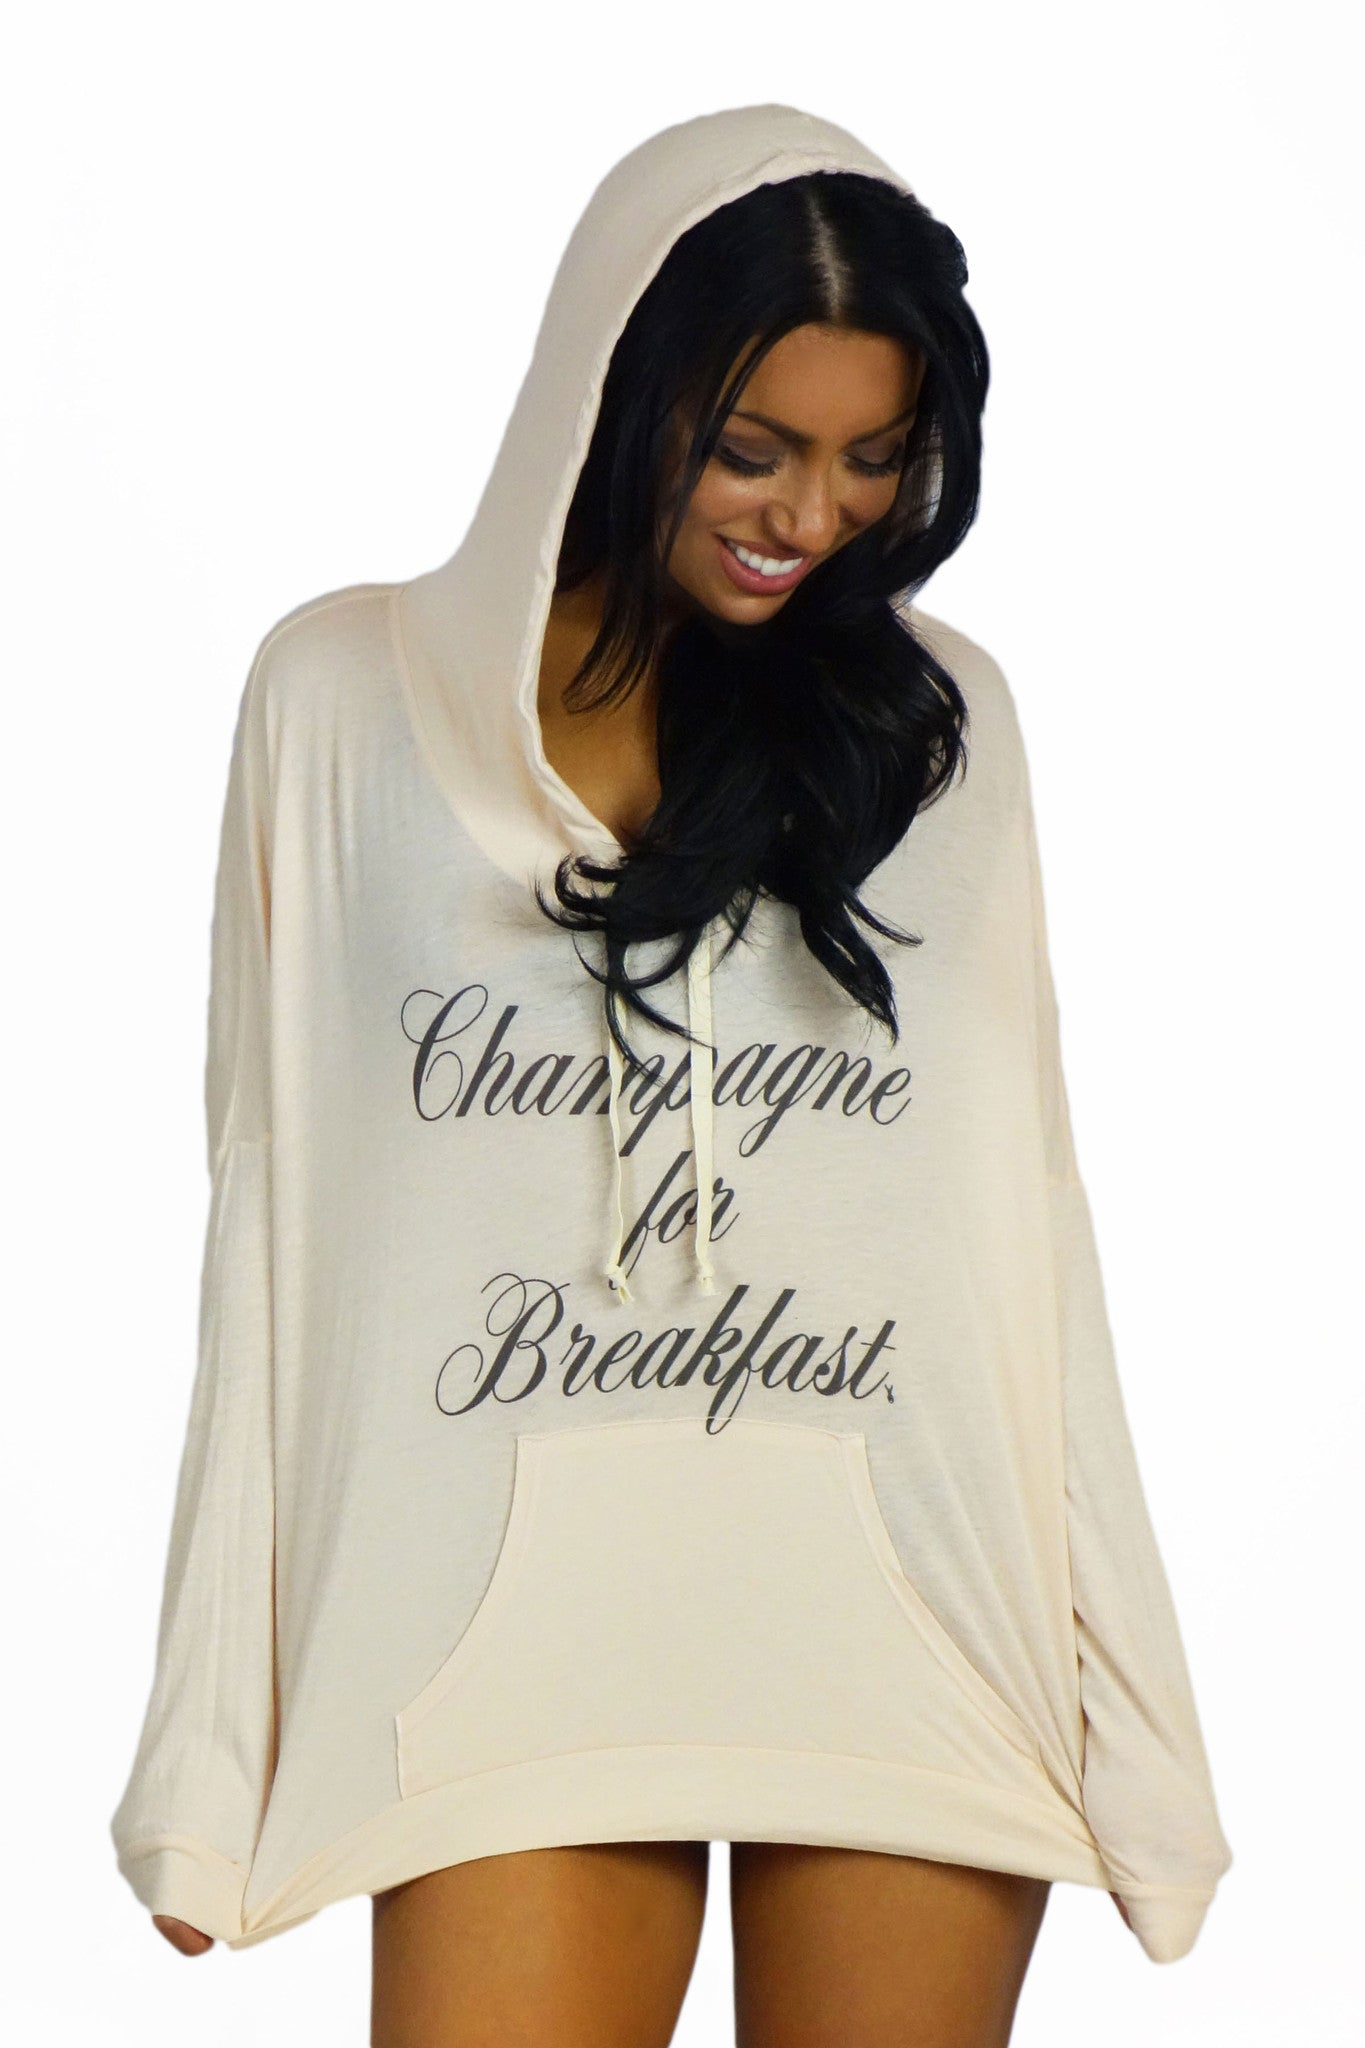 Royal Rabbit Champagne for Breakfast Sweater - OUTERWEAR - ROYAL RABBIT - Free Vibrationz - 2